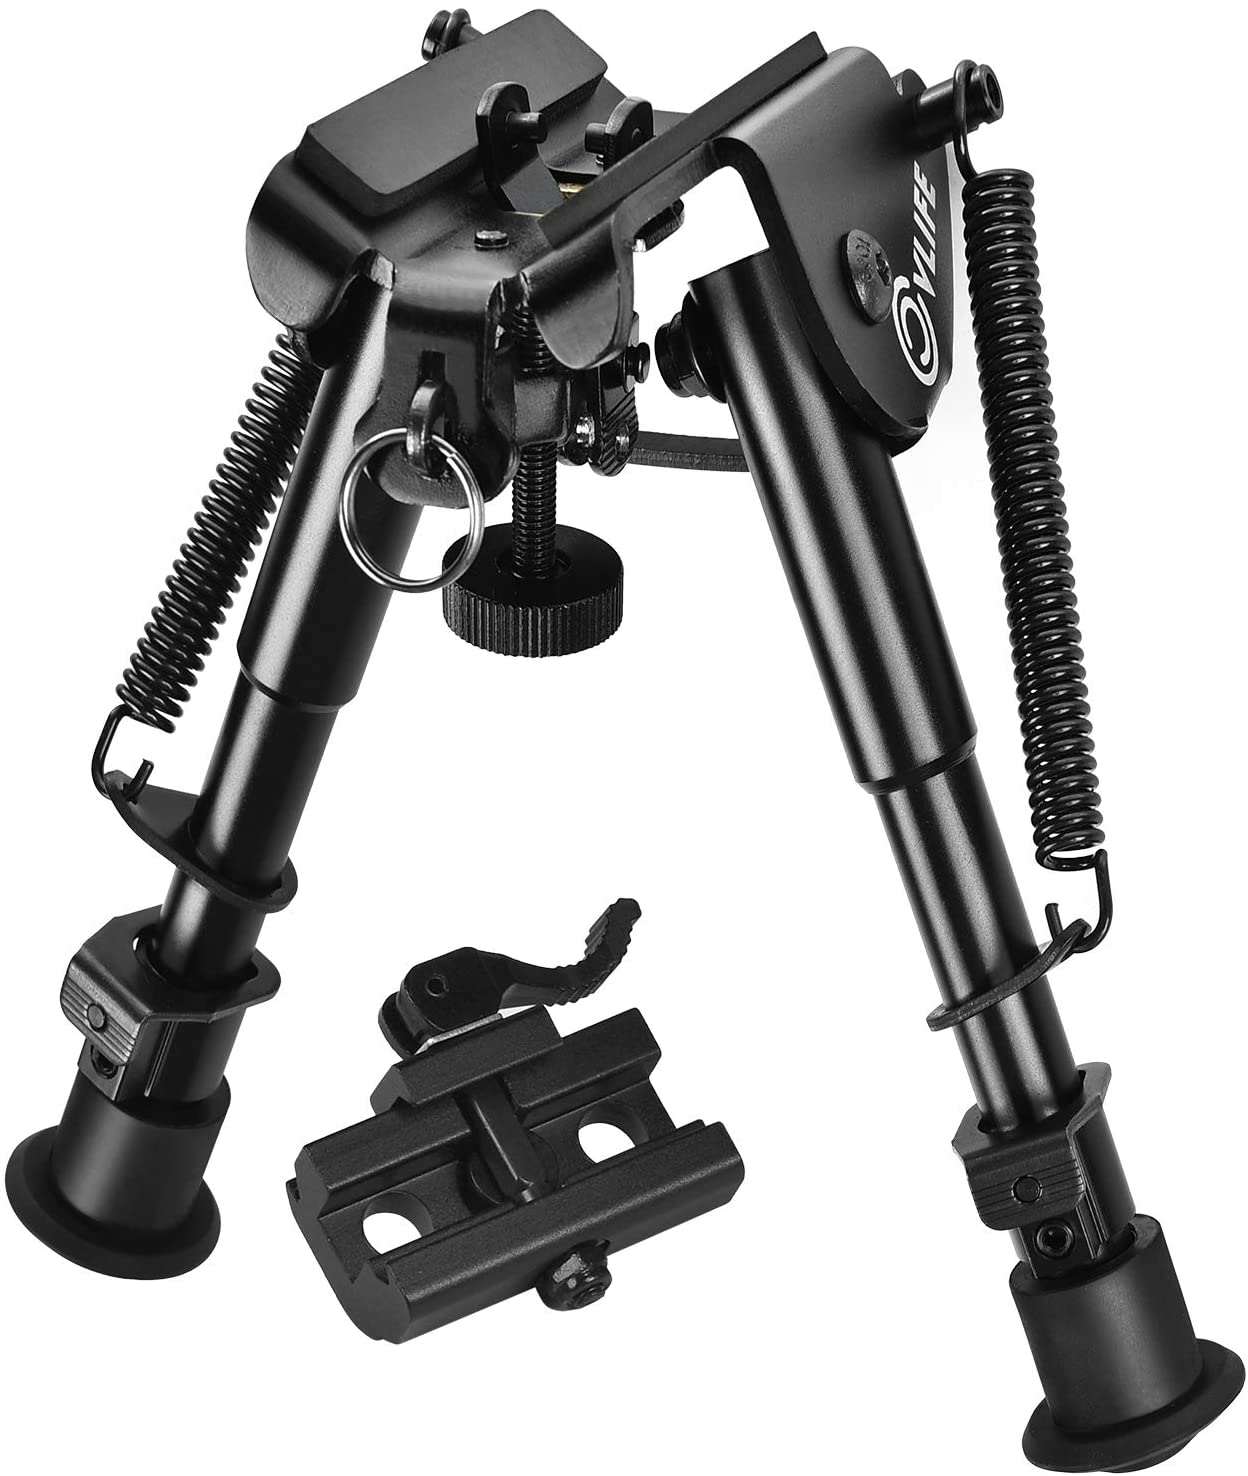 CVLIFE 6-9 Inches Bipod Quick Release Adapter Included for Hunting and Shooting